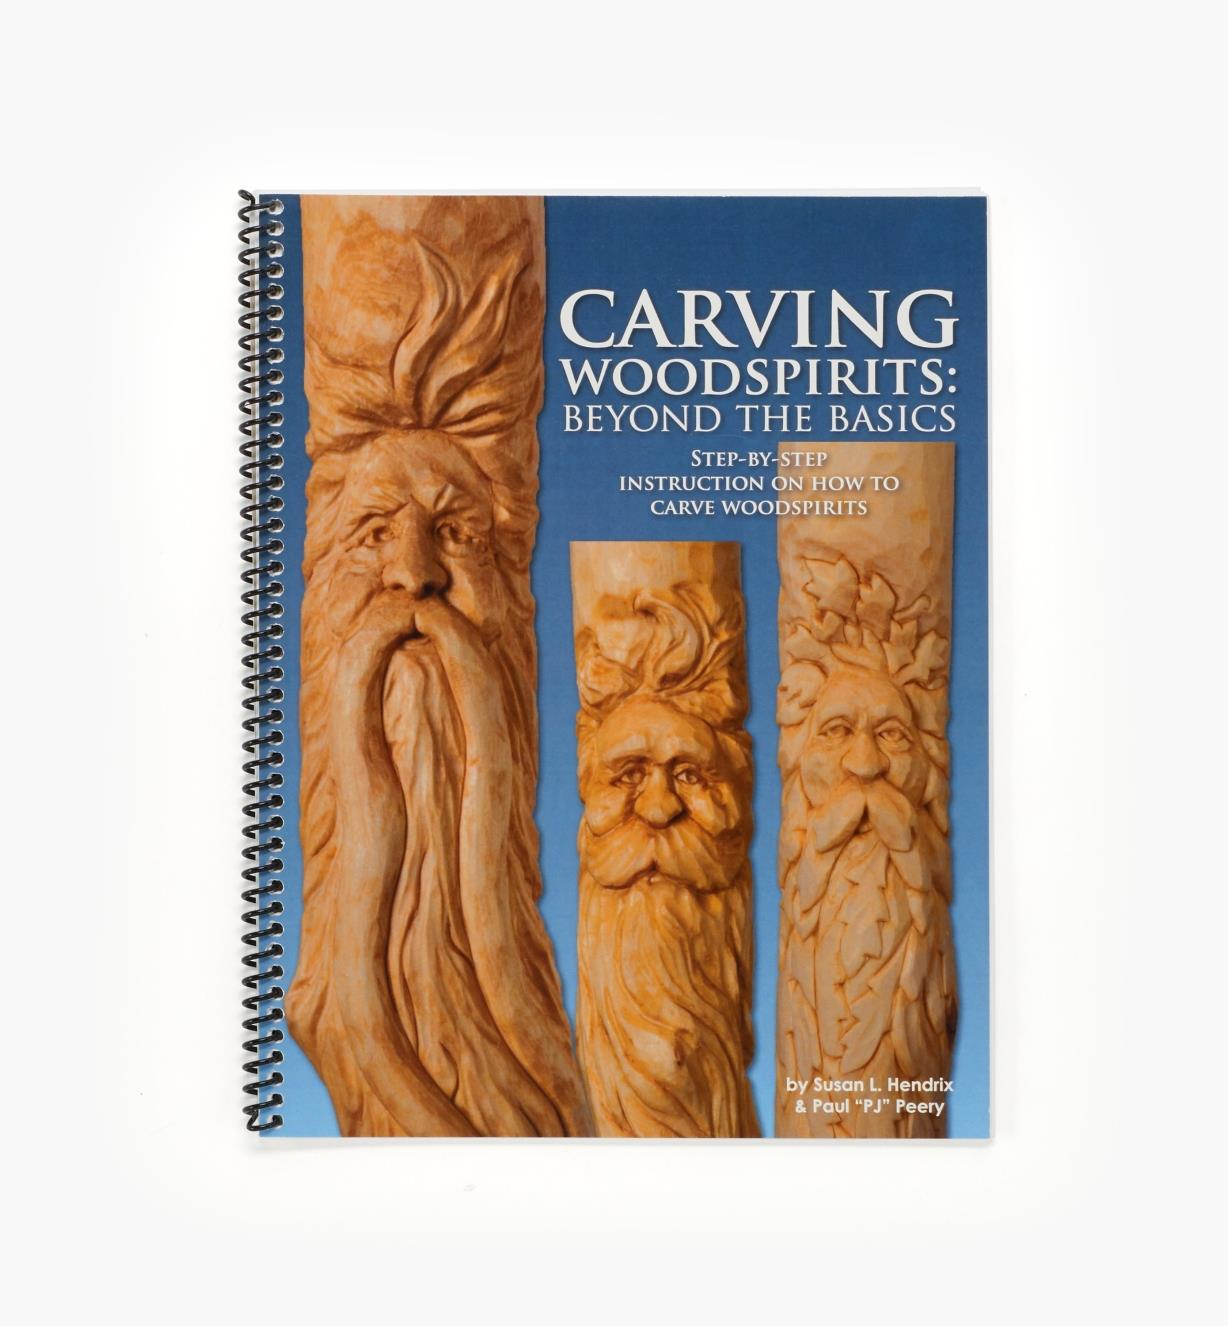 45L0157 - Carving Woodspirits – Beyond the Basics